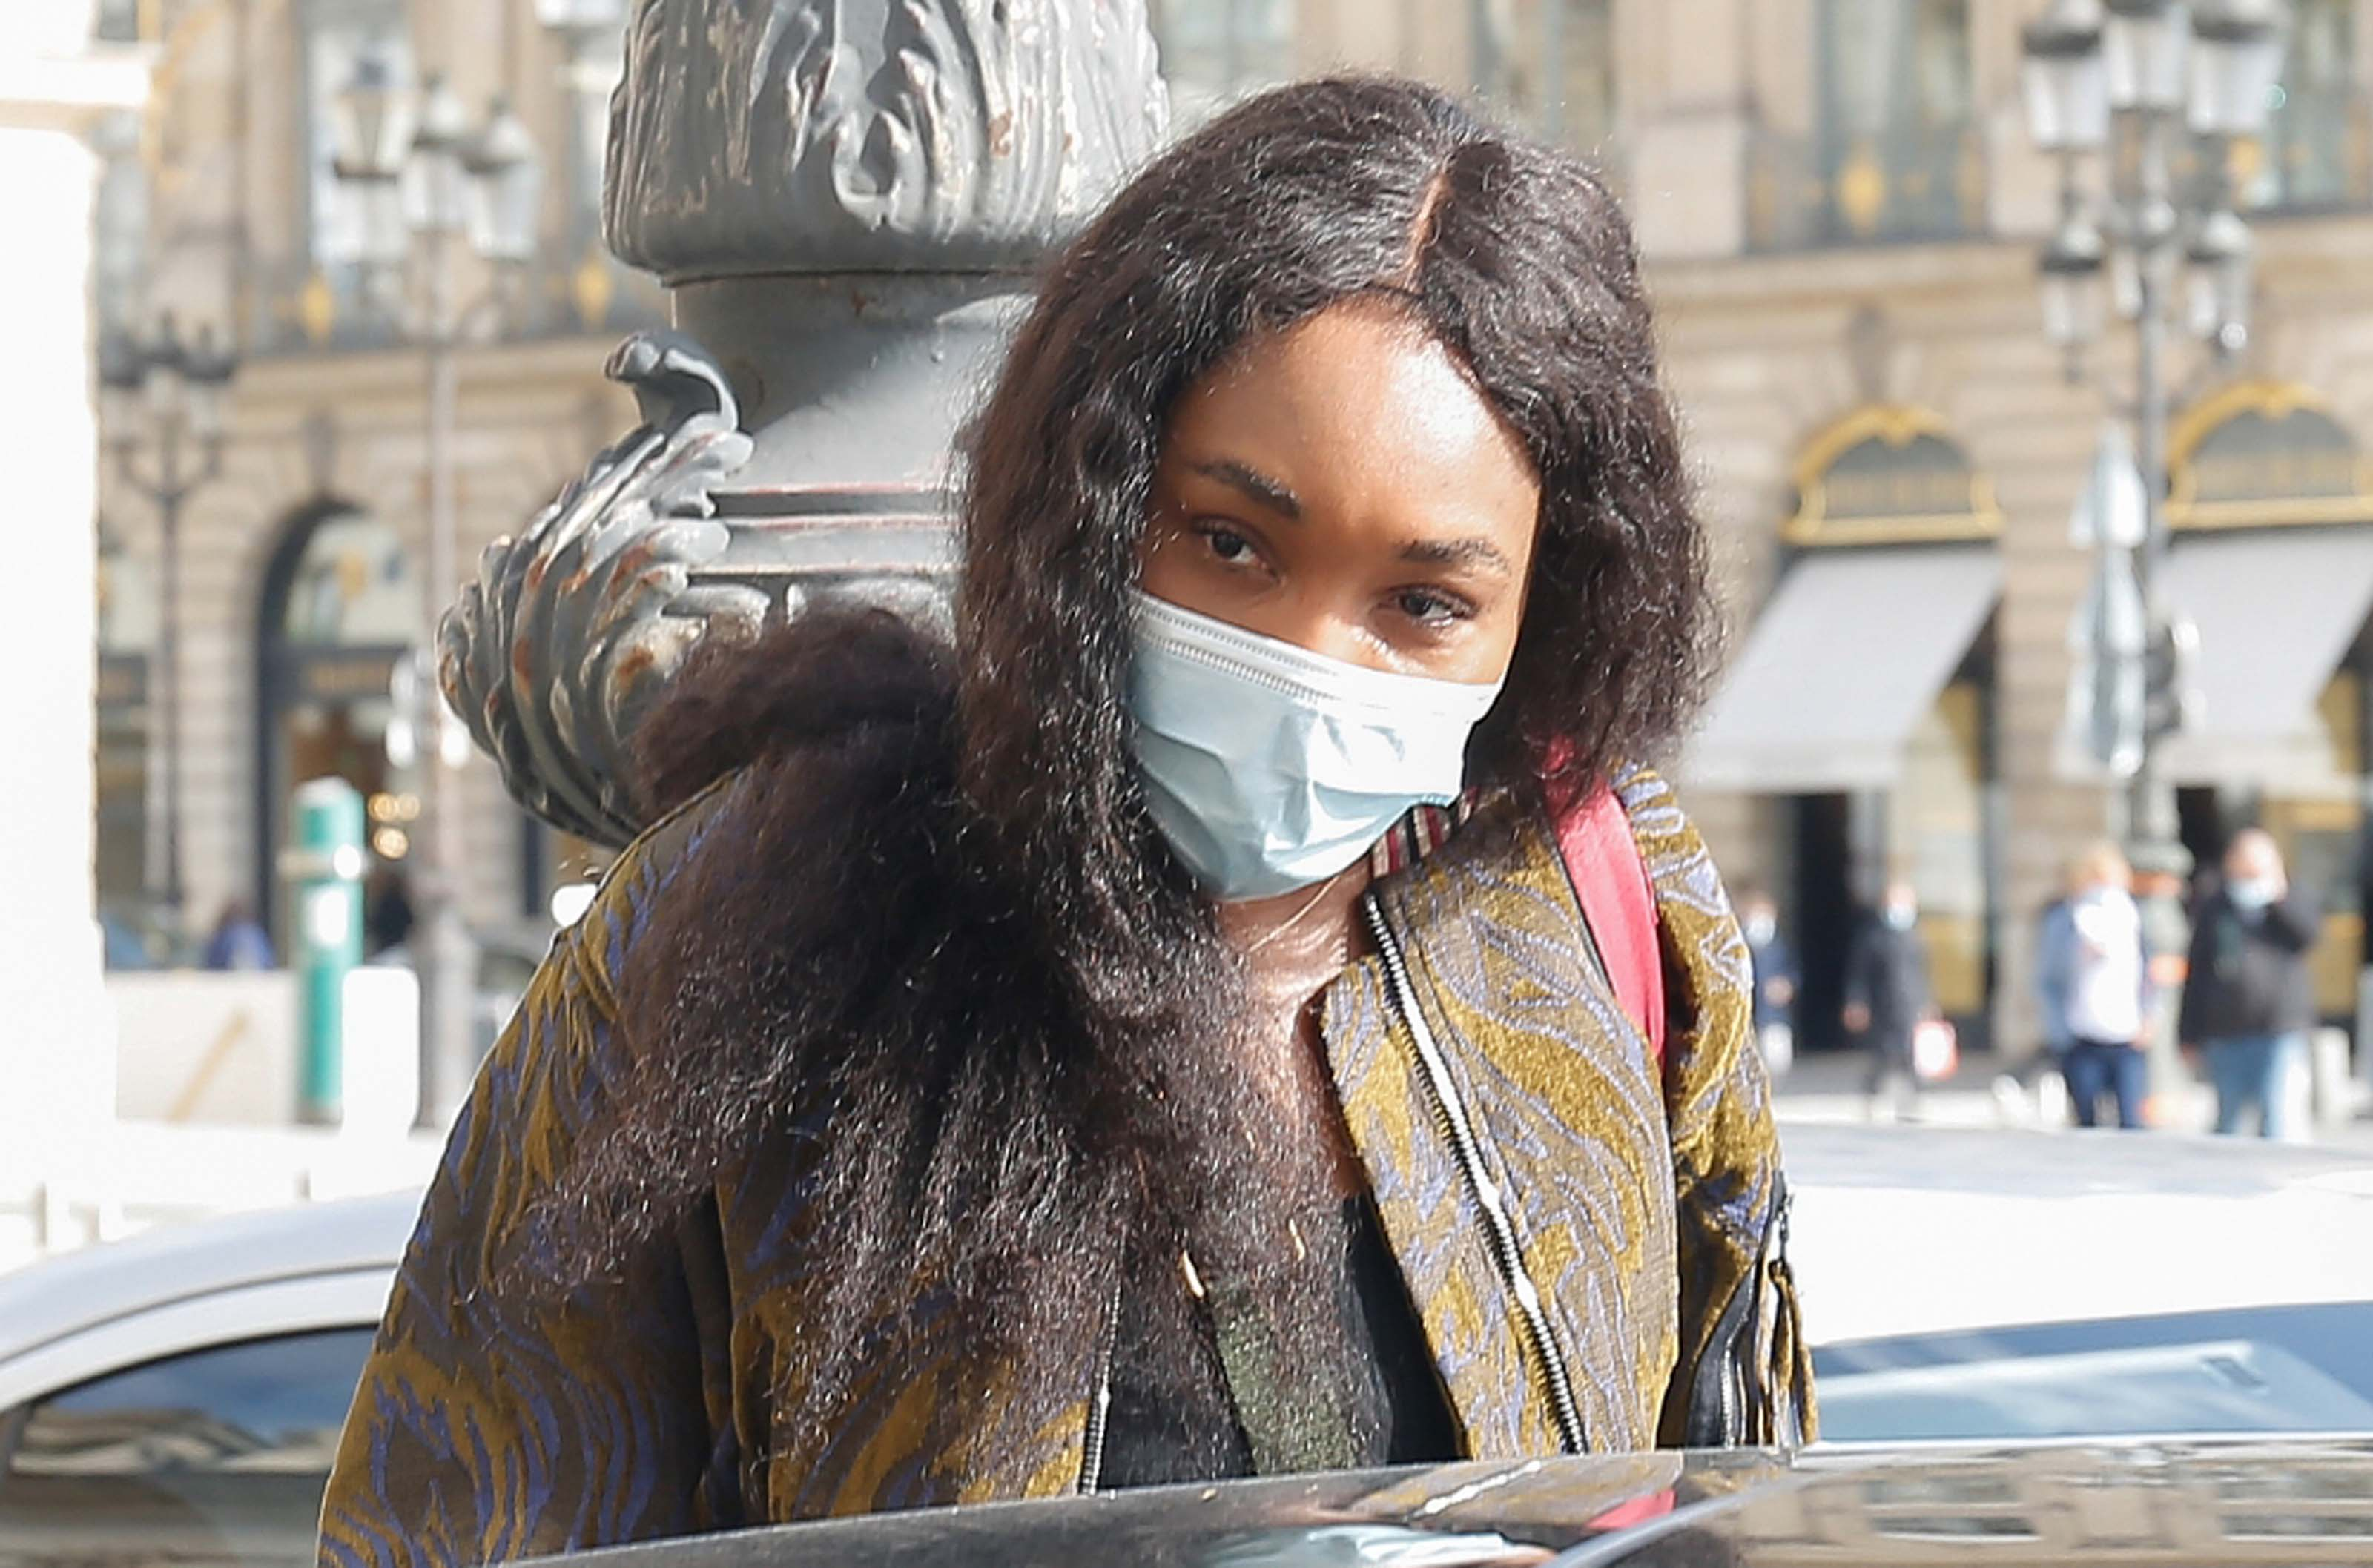 Venus Williams leaving her hotel after the Paris Fashion Week 2020